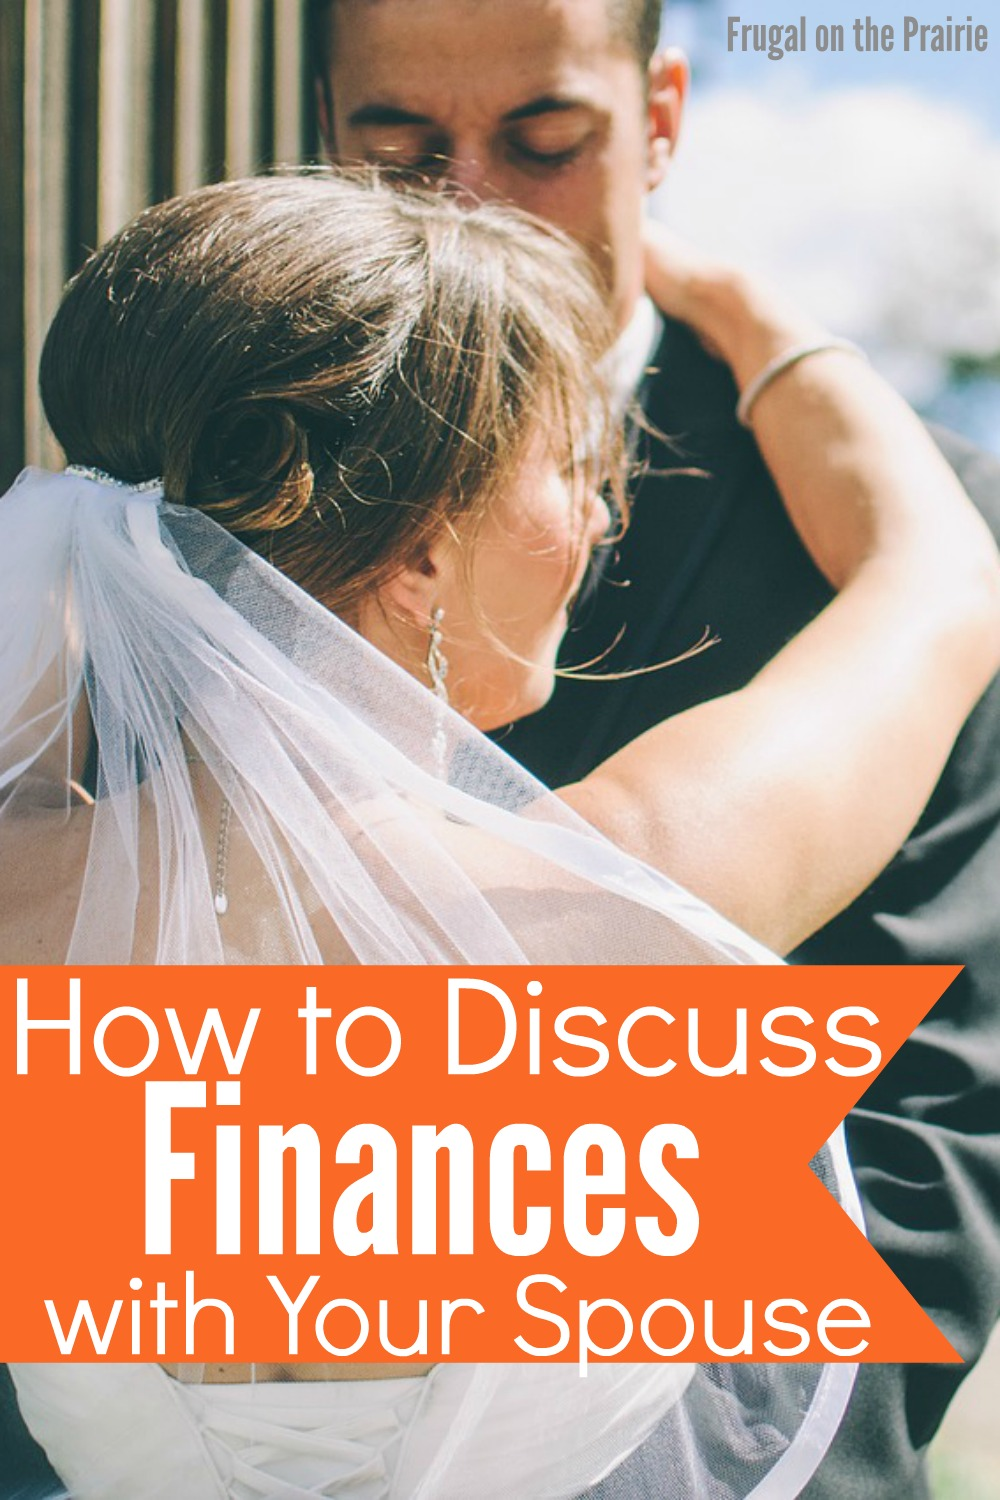 Not sure how to discuss finances with your spouse? I've got some great tips to help you keep your cool and open the lines of communication.